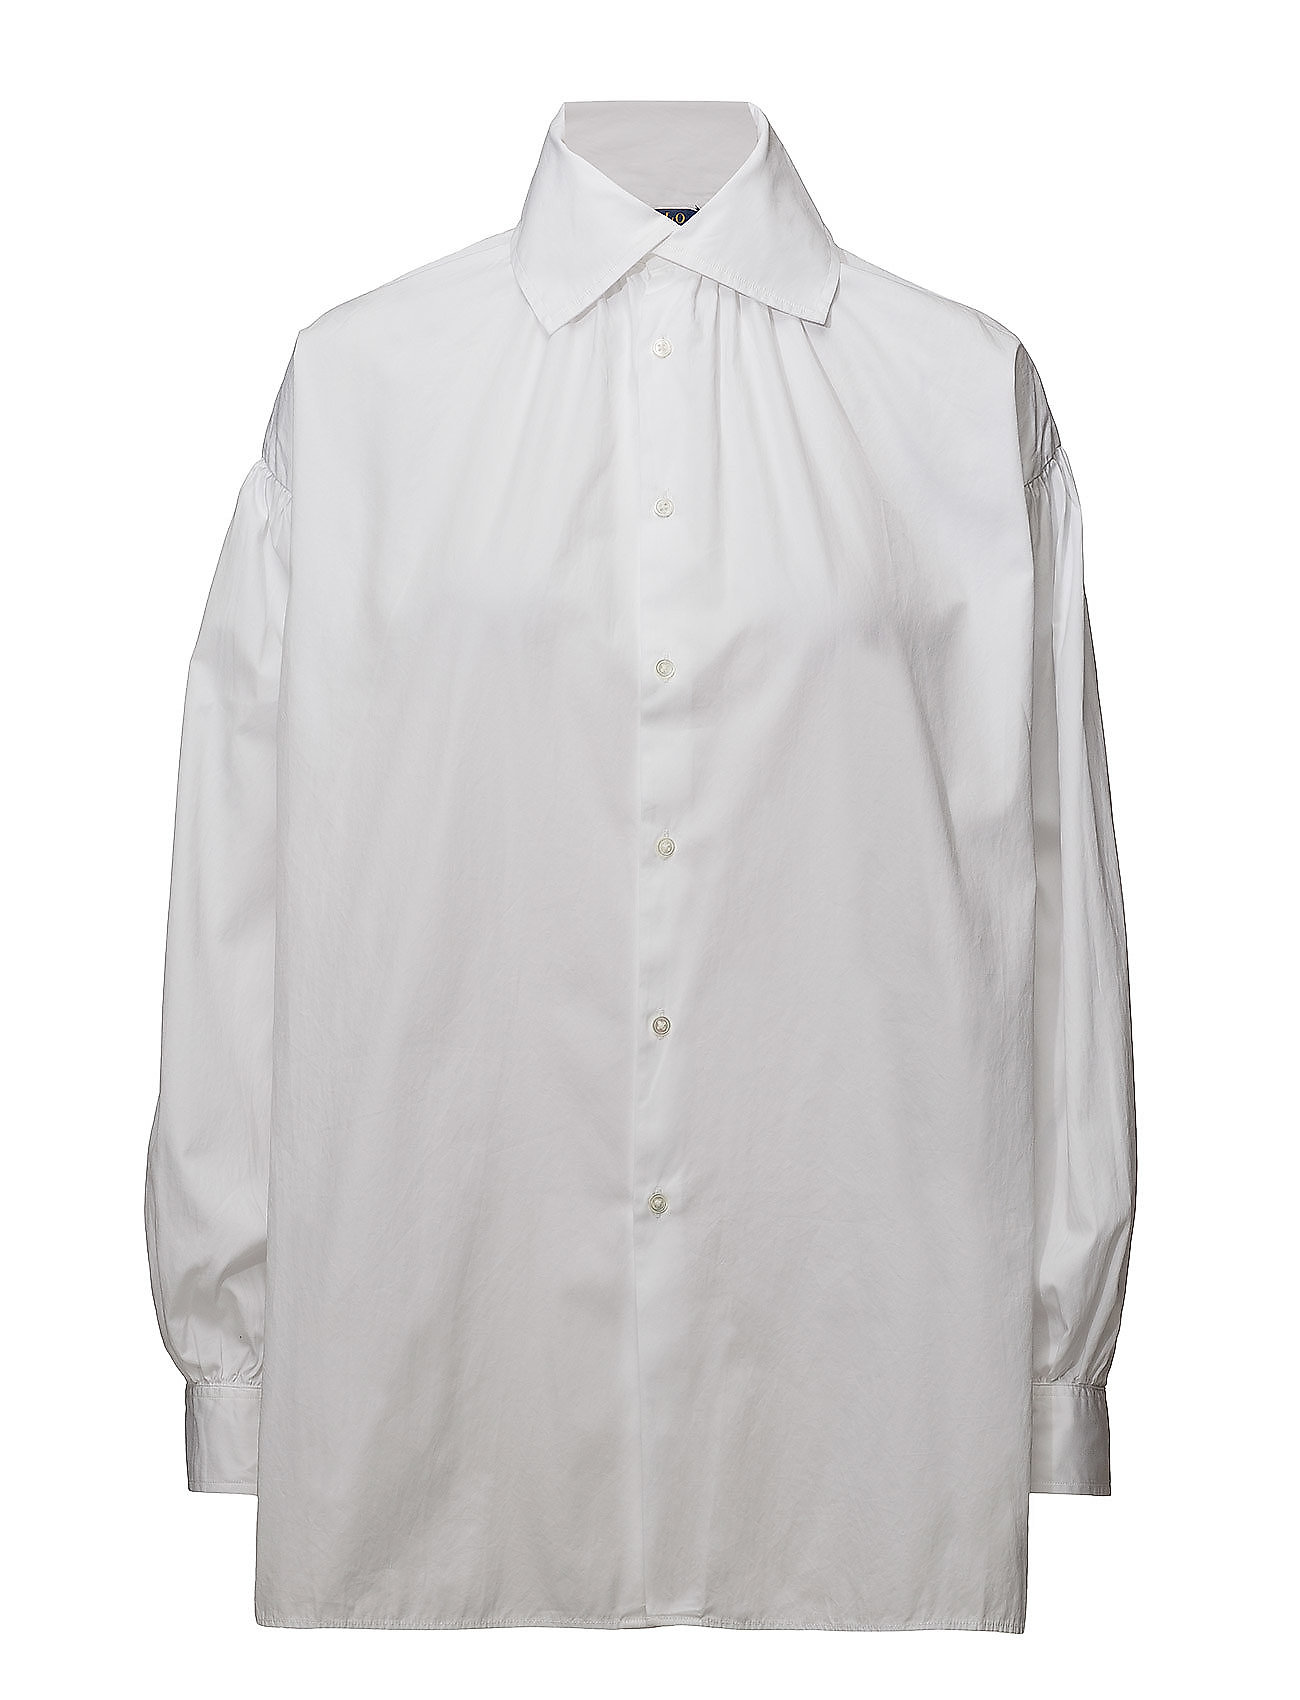 Polo Ralph Lauren Cotton Button-Down Shirt